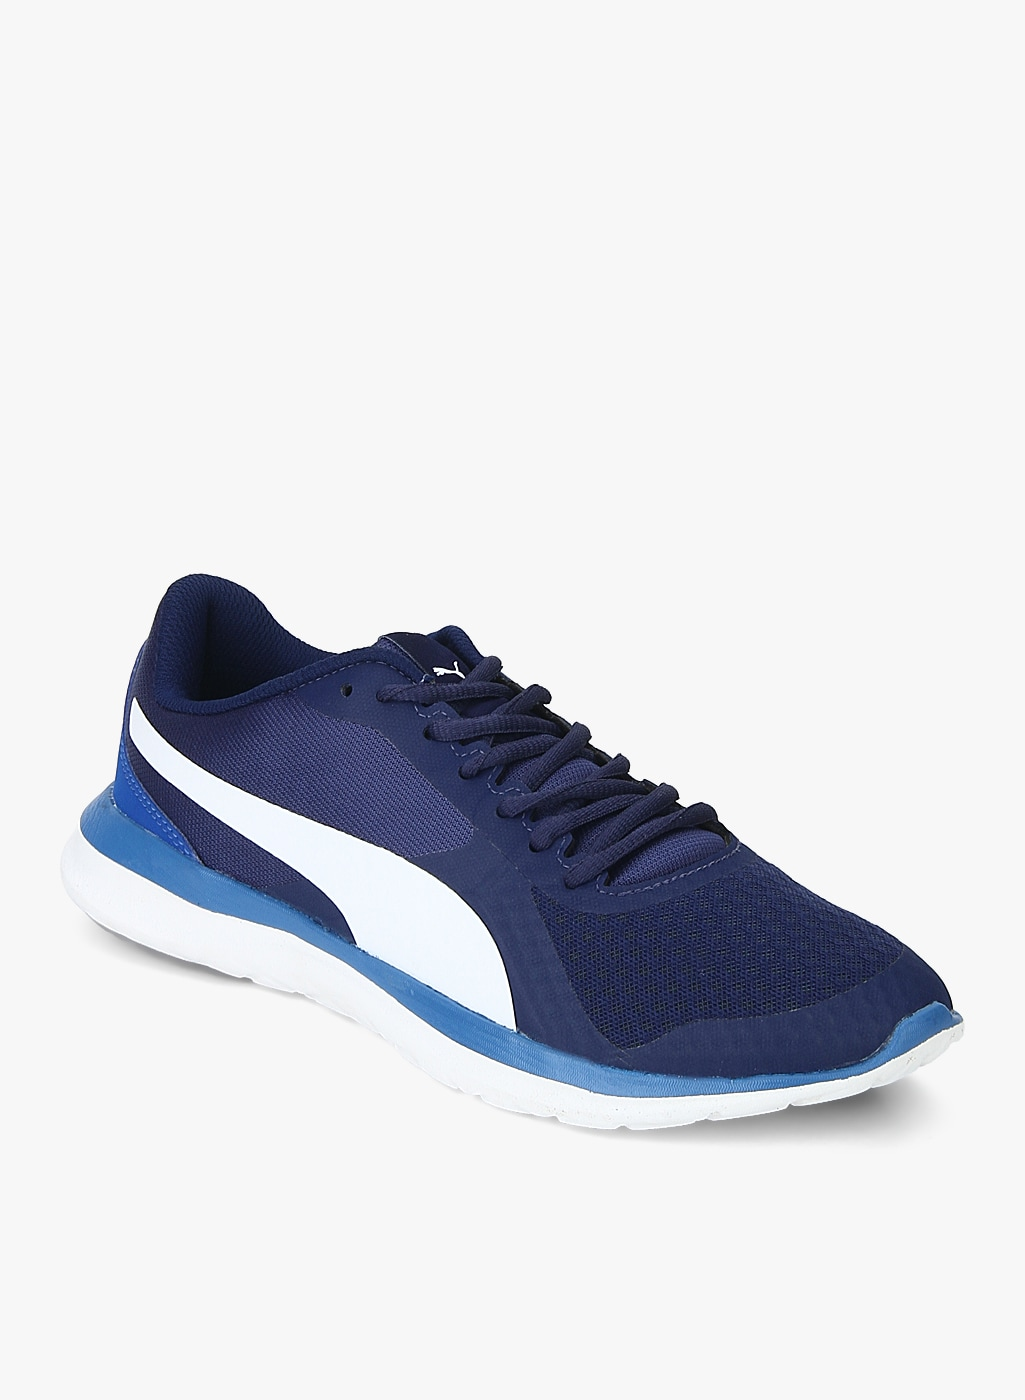 Puma Women Shoes - Buy Puma Women Shoes online in India ed69c9b79